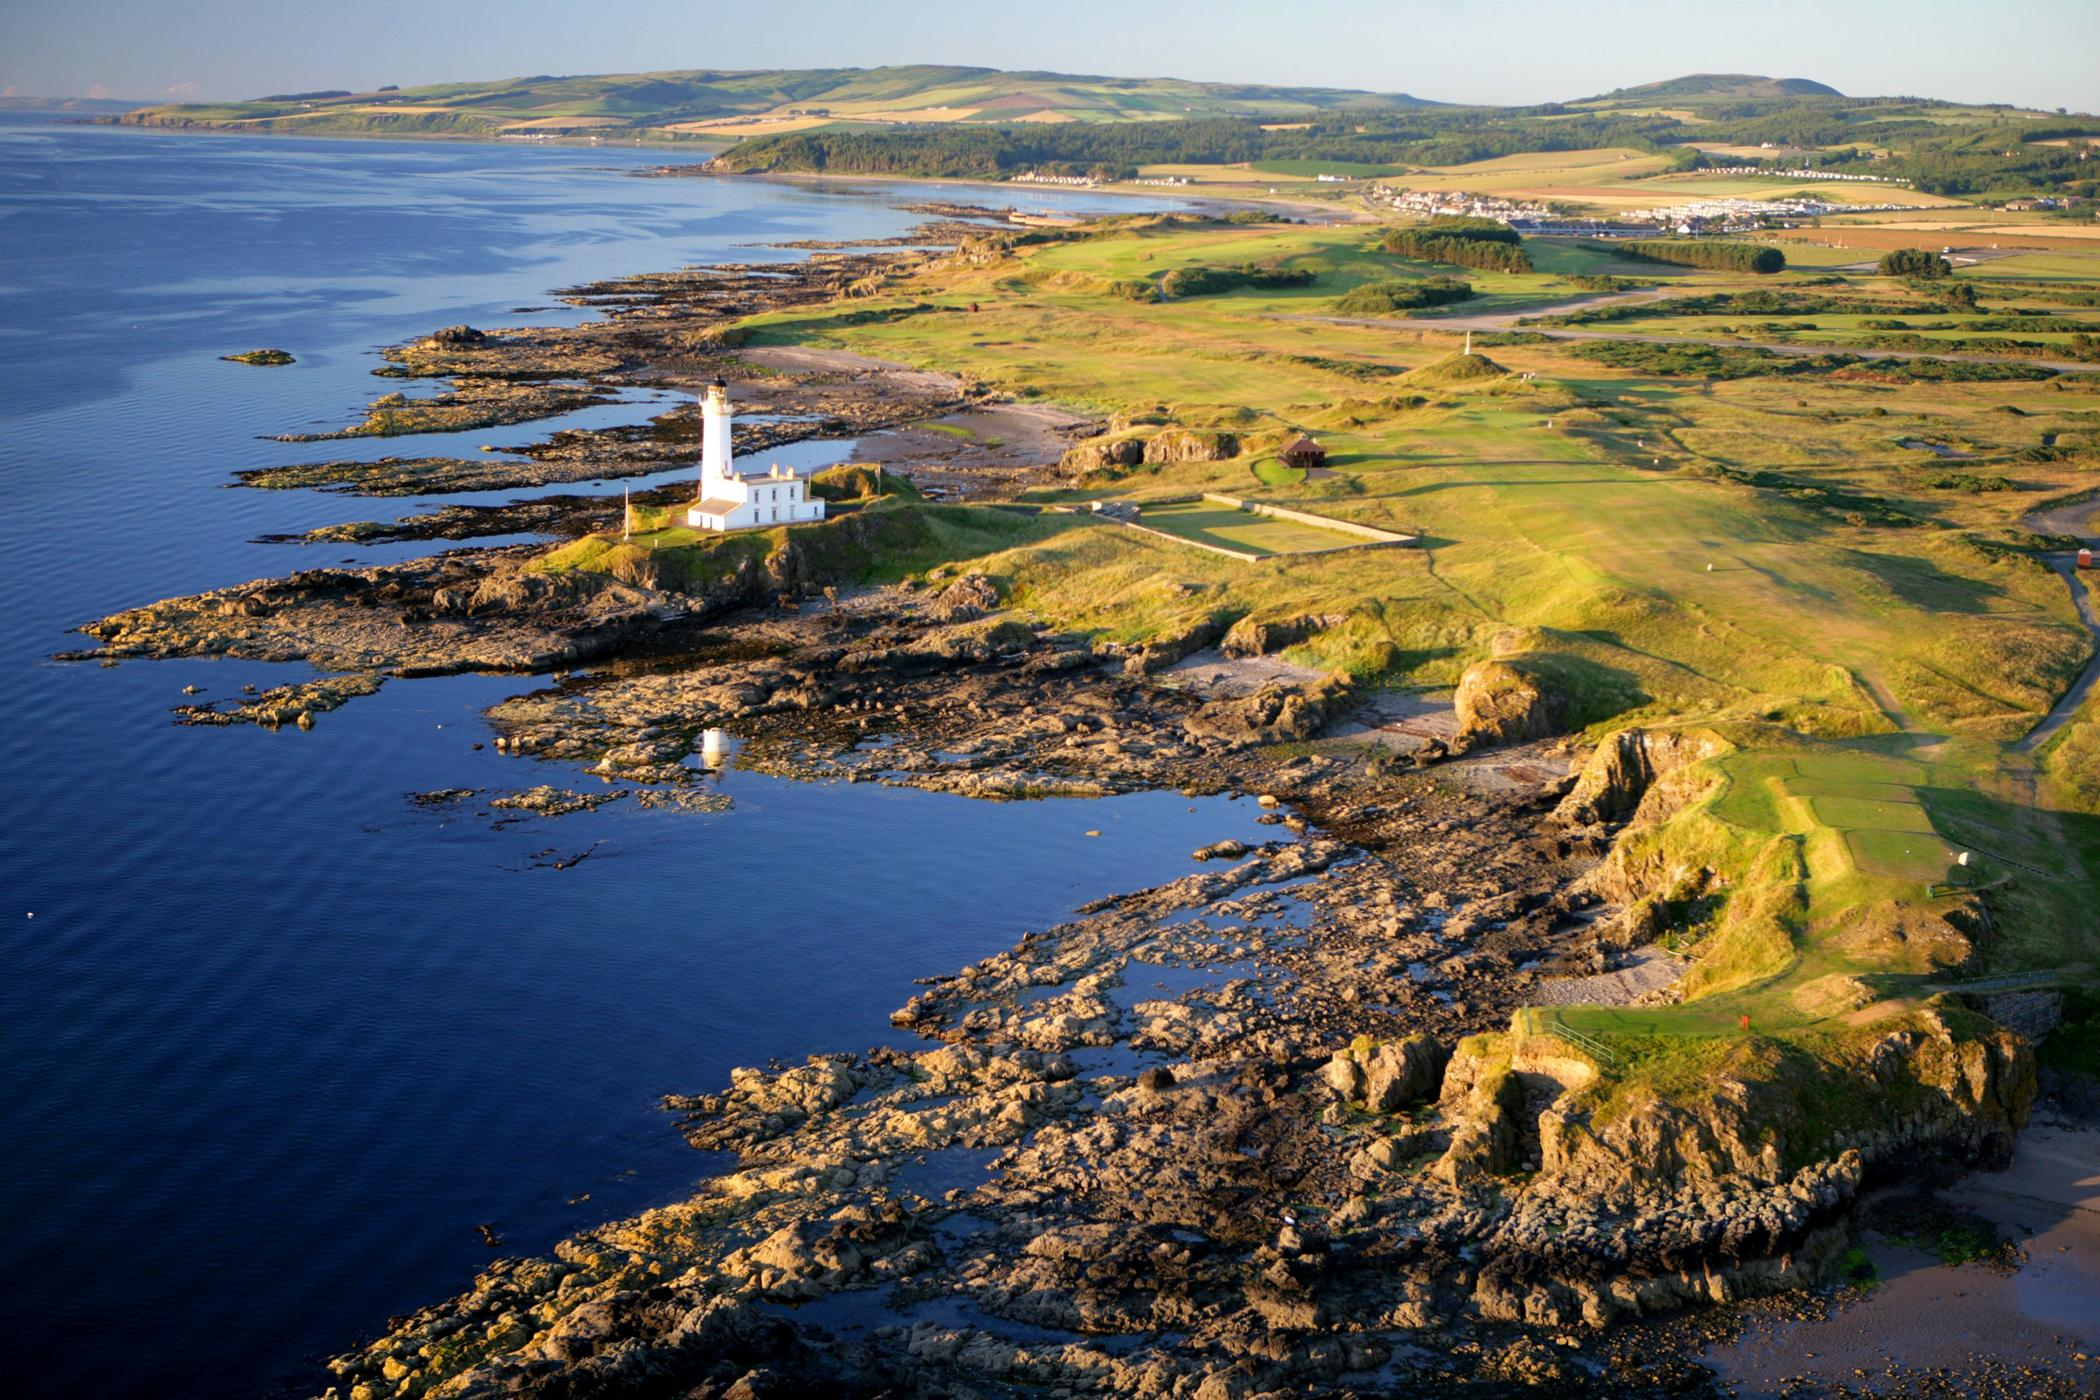 God's view of Turnberry